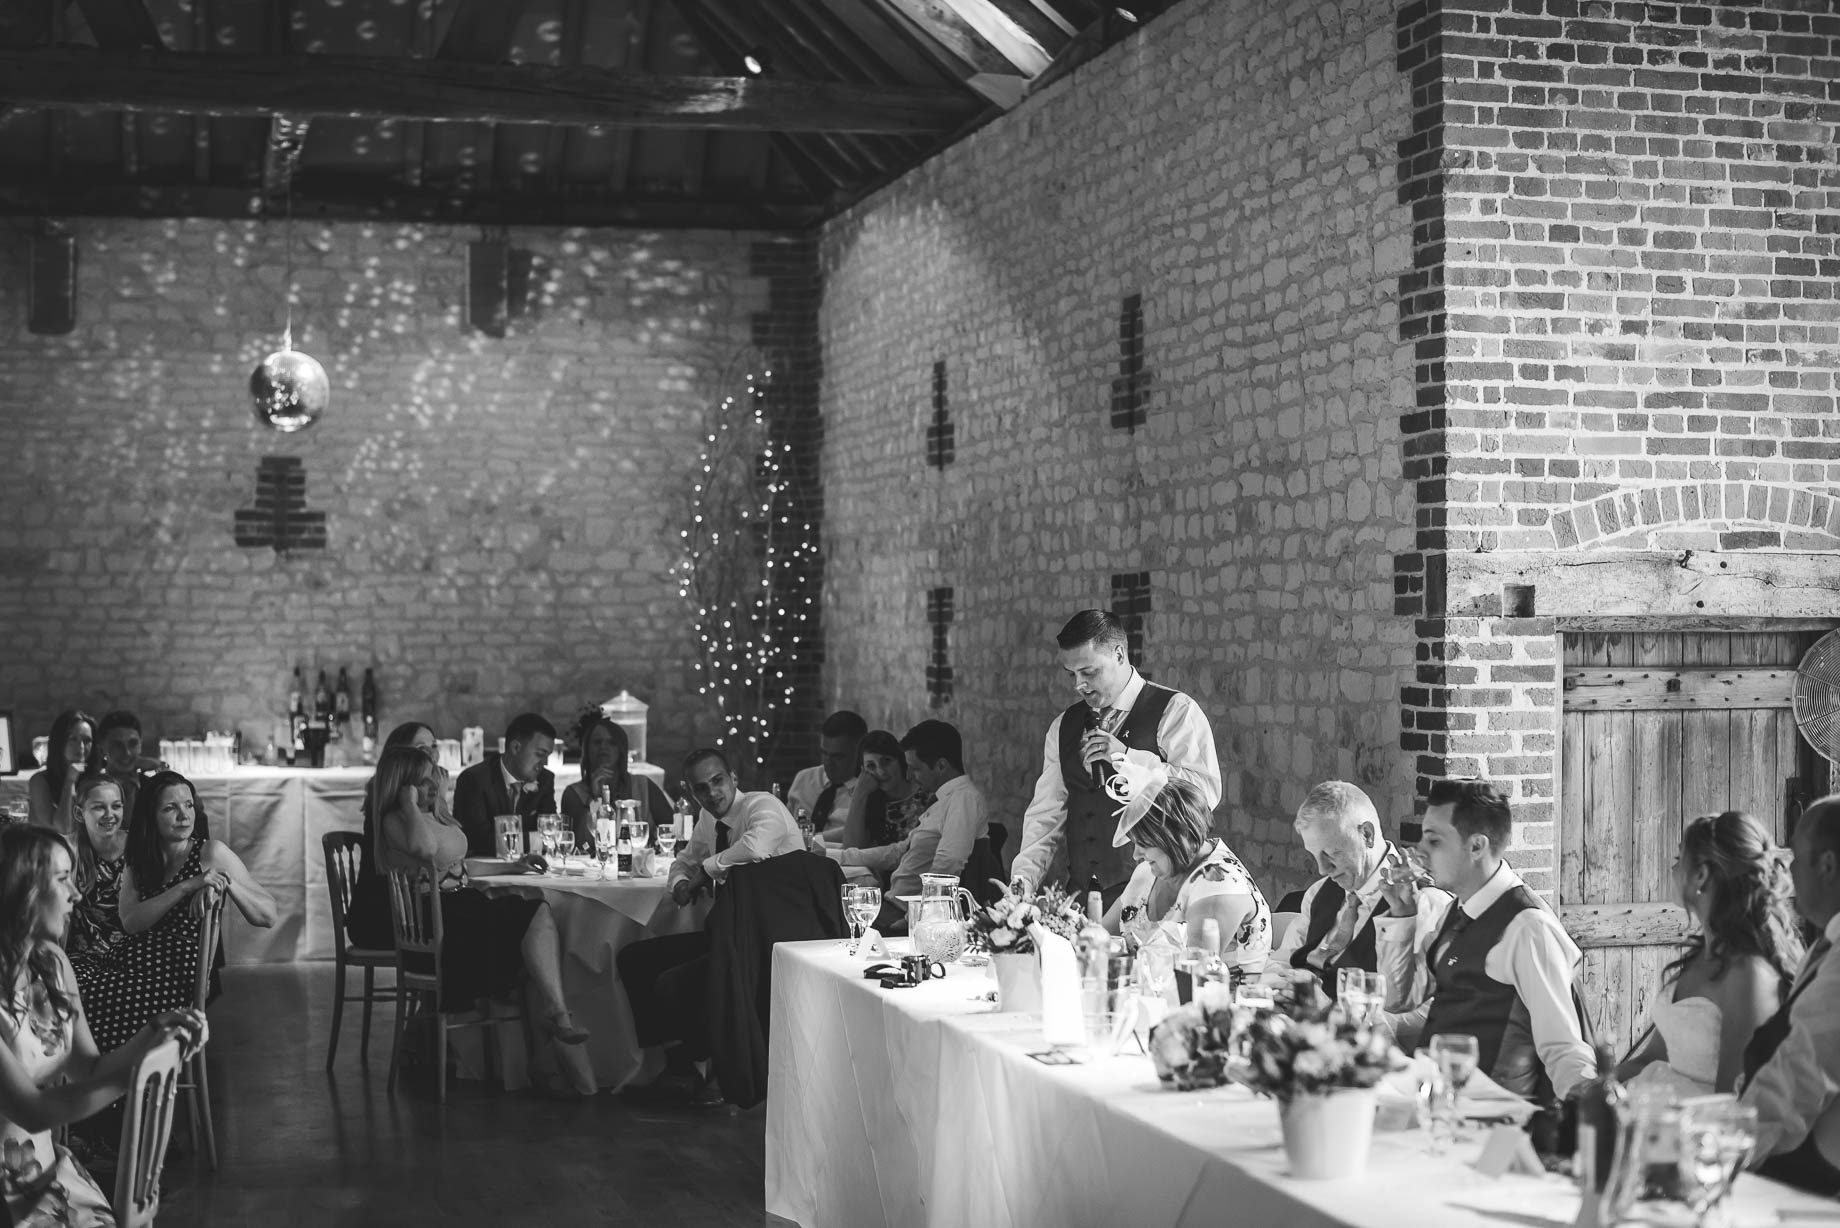 Bury Court Barn wedding photography - Guy Collier - Kirsty and Lewis (133 of 150)